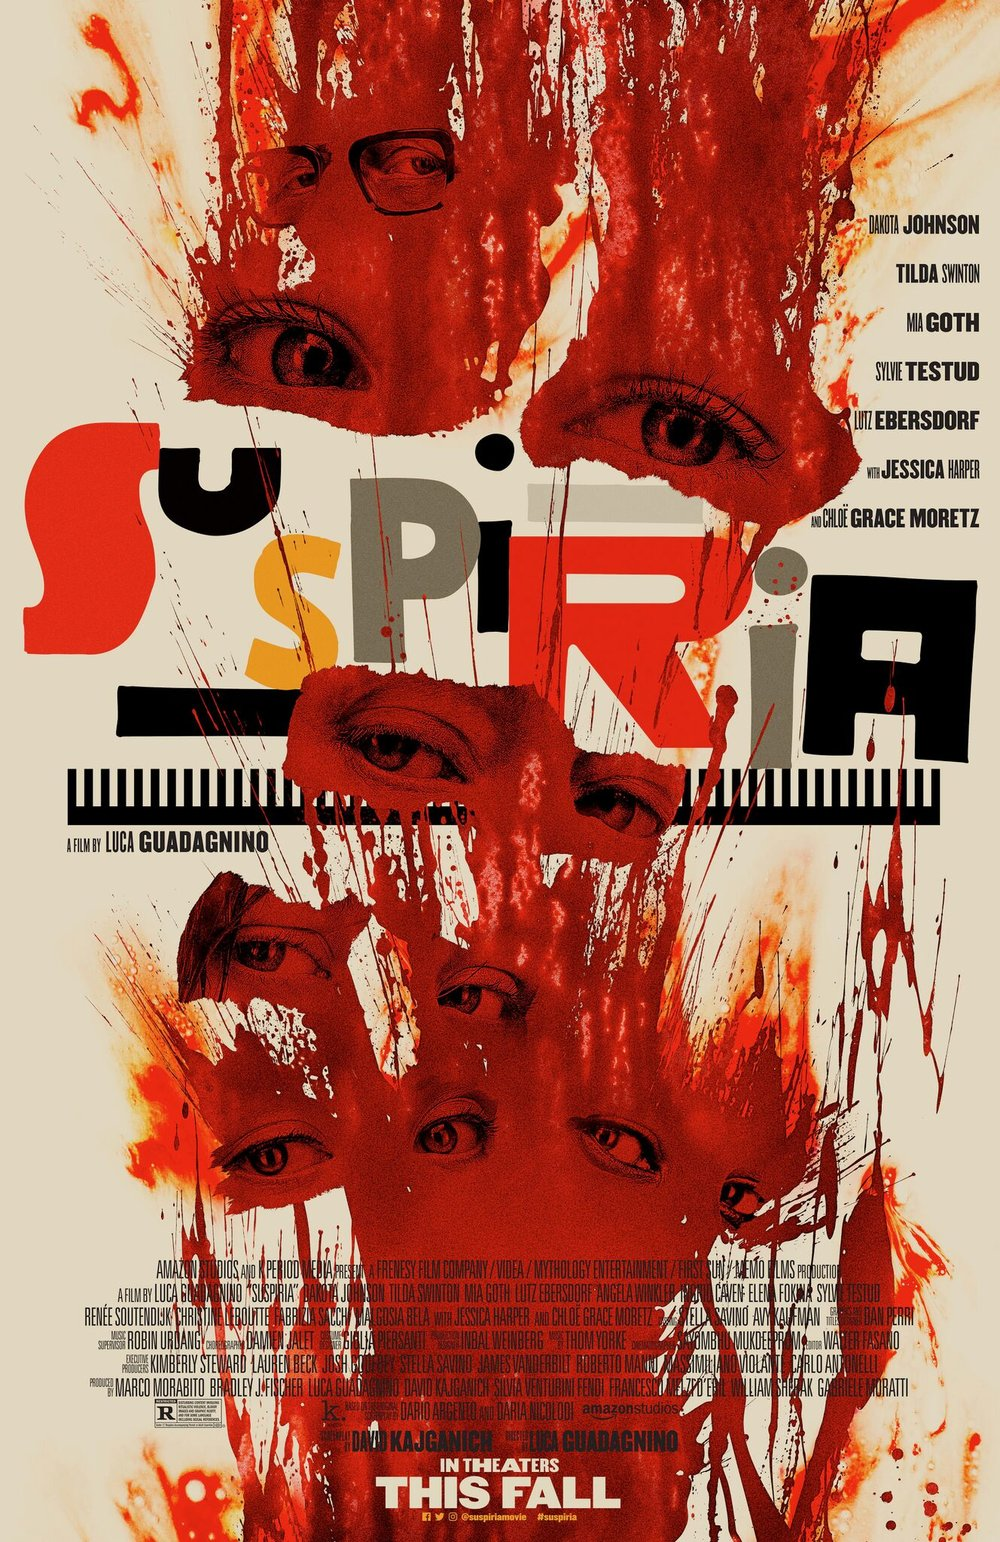 check-out-this-bloody-eye-catching-new-poster-for-suspiria1